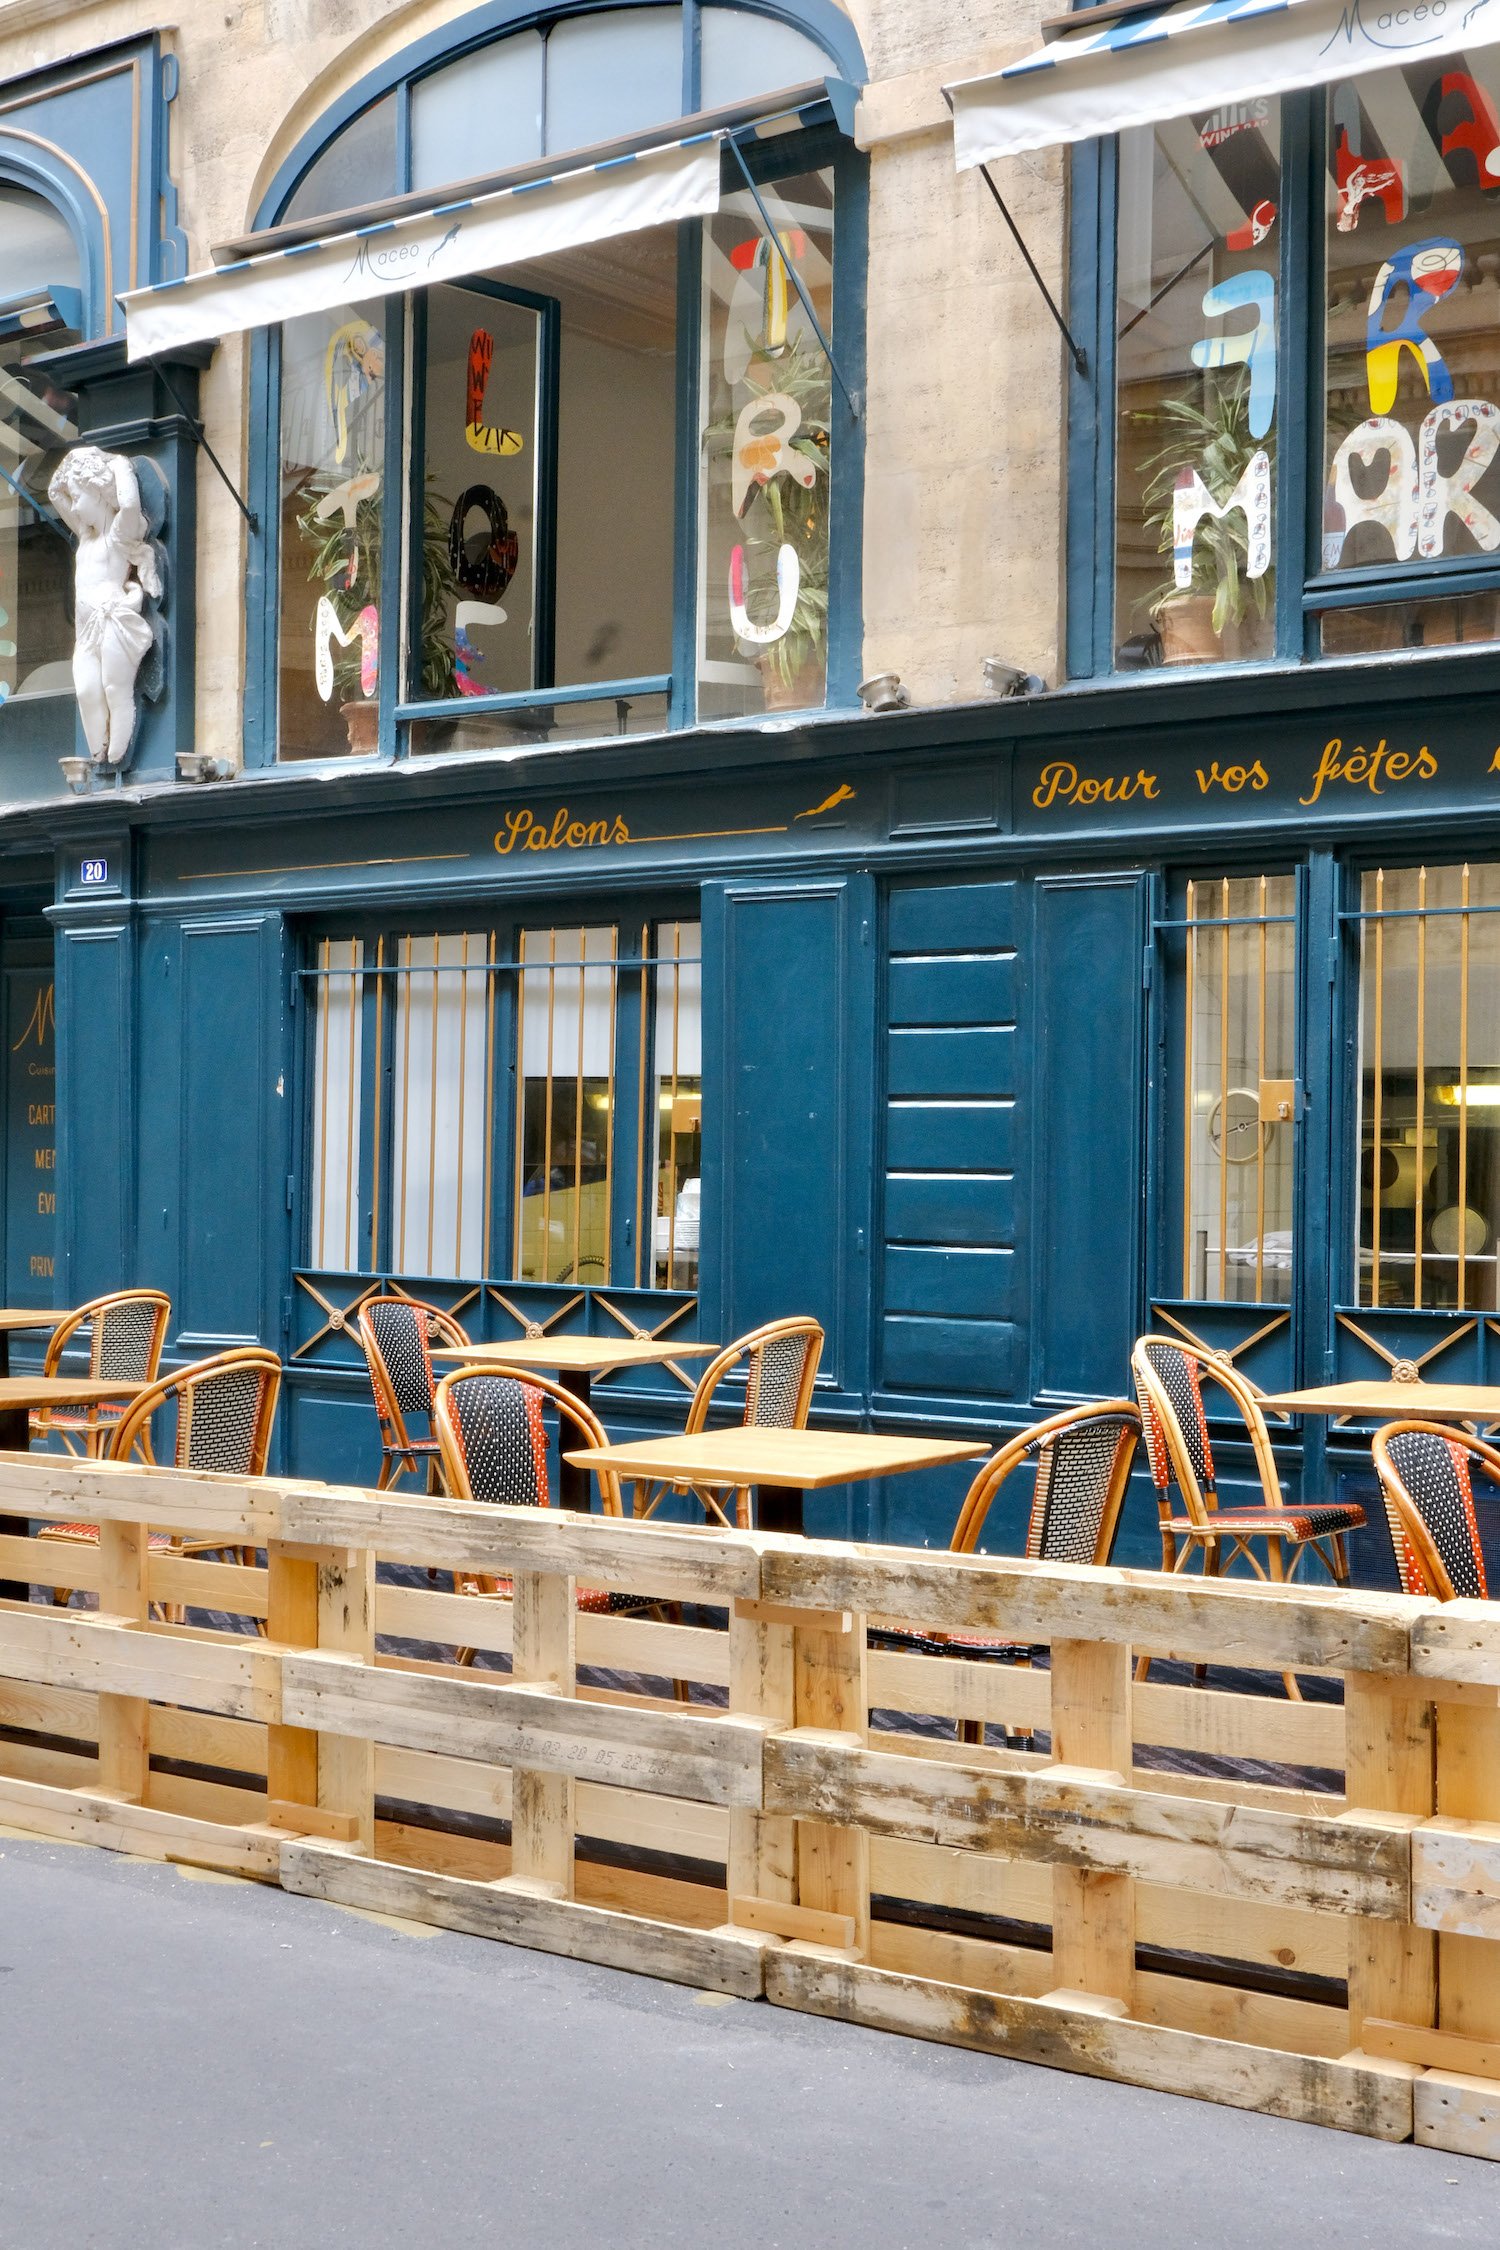 Reopening of bars and restaurants in France